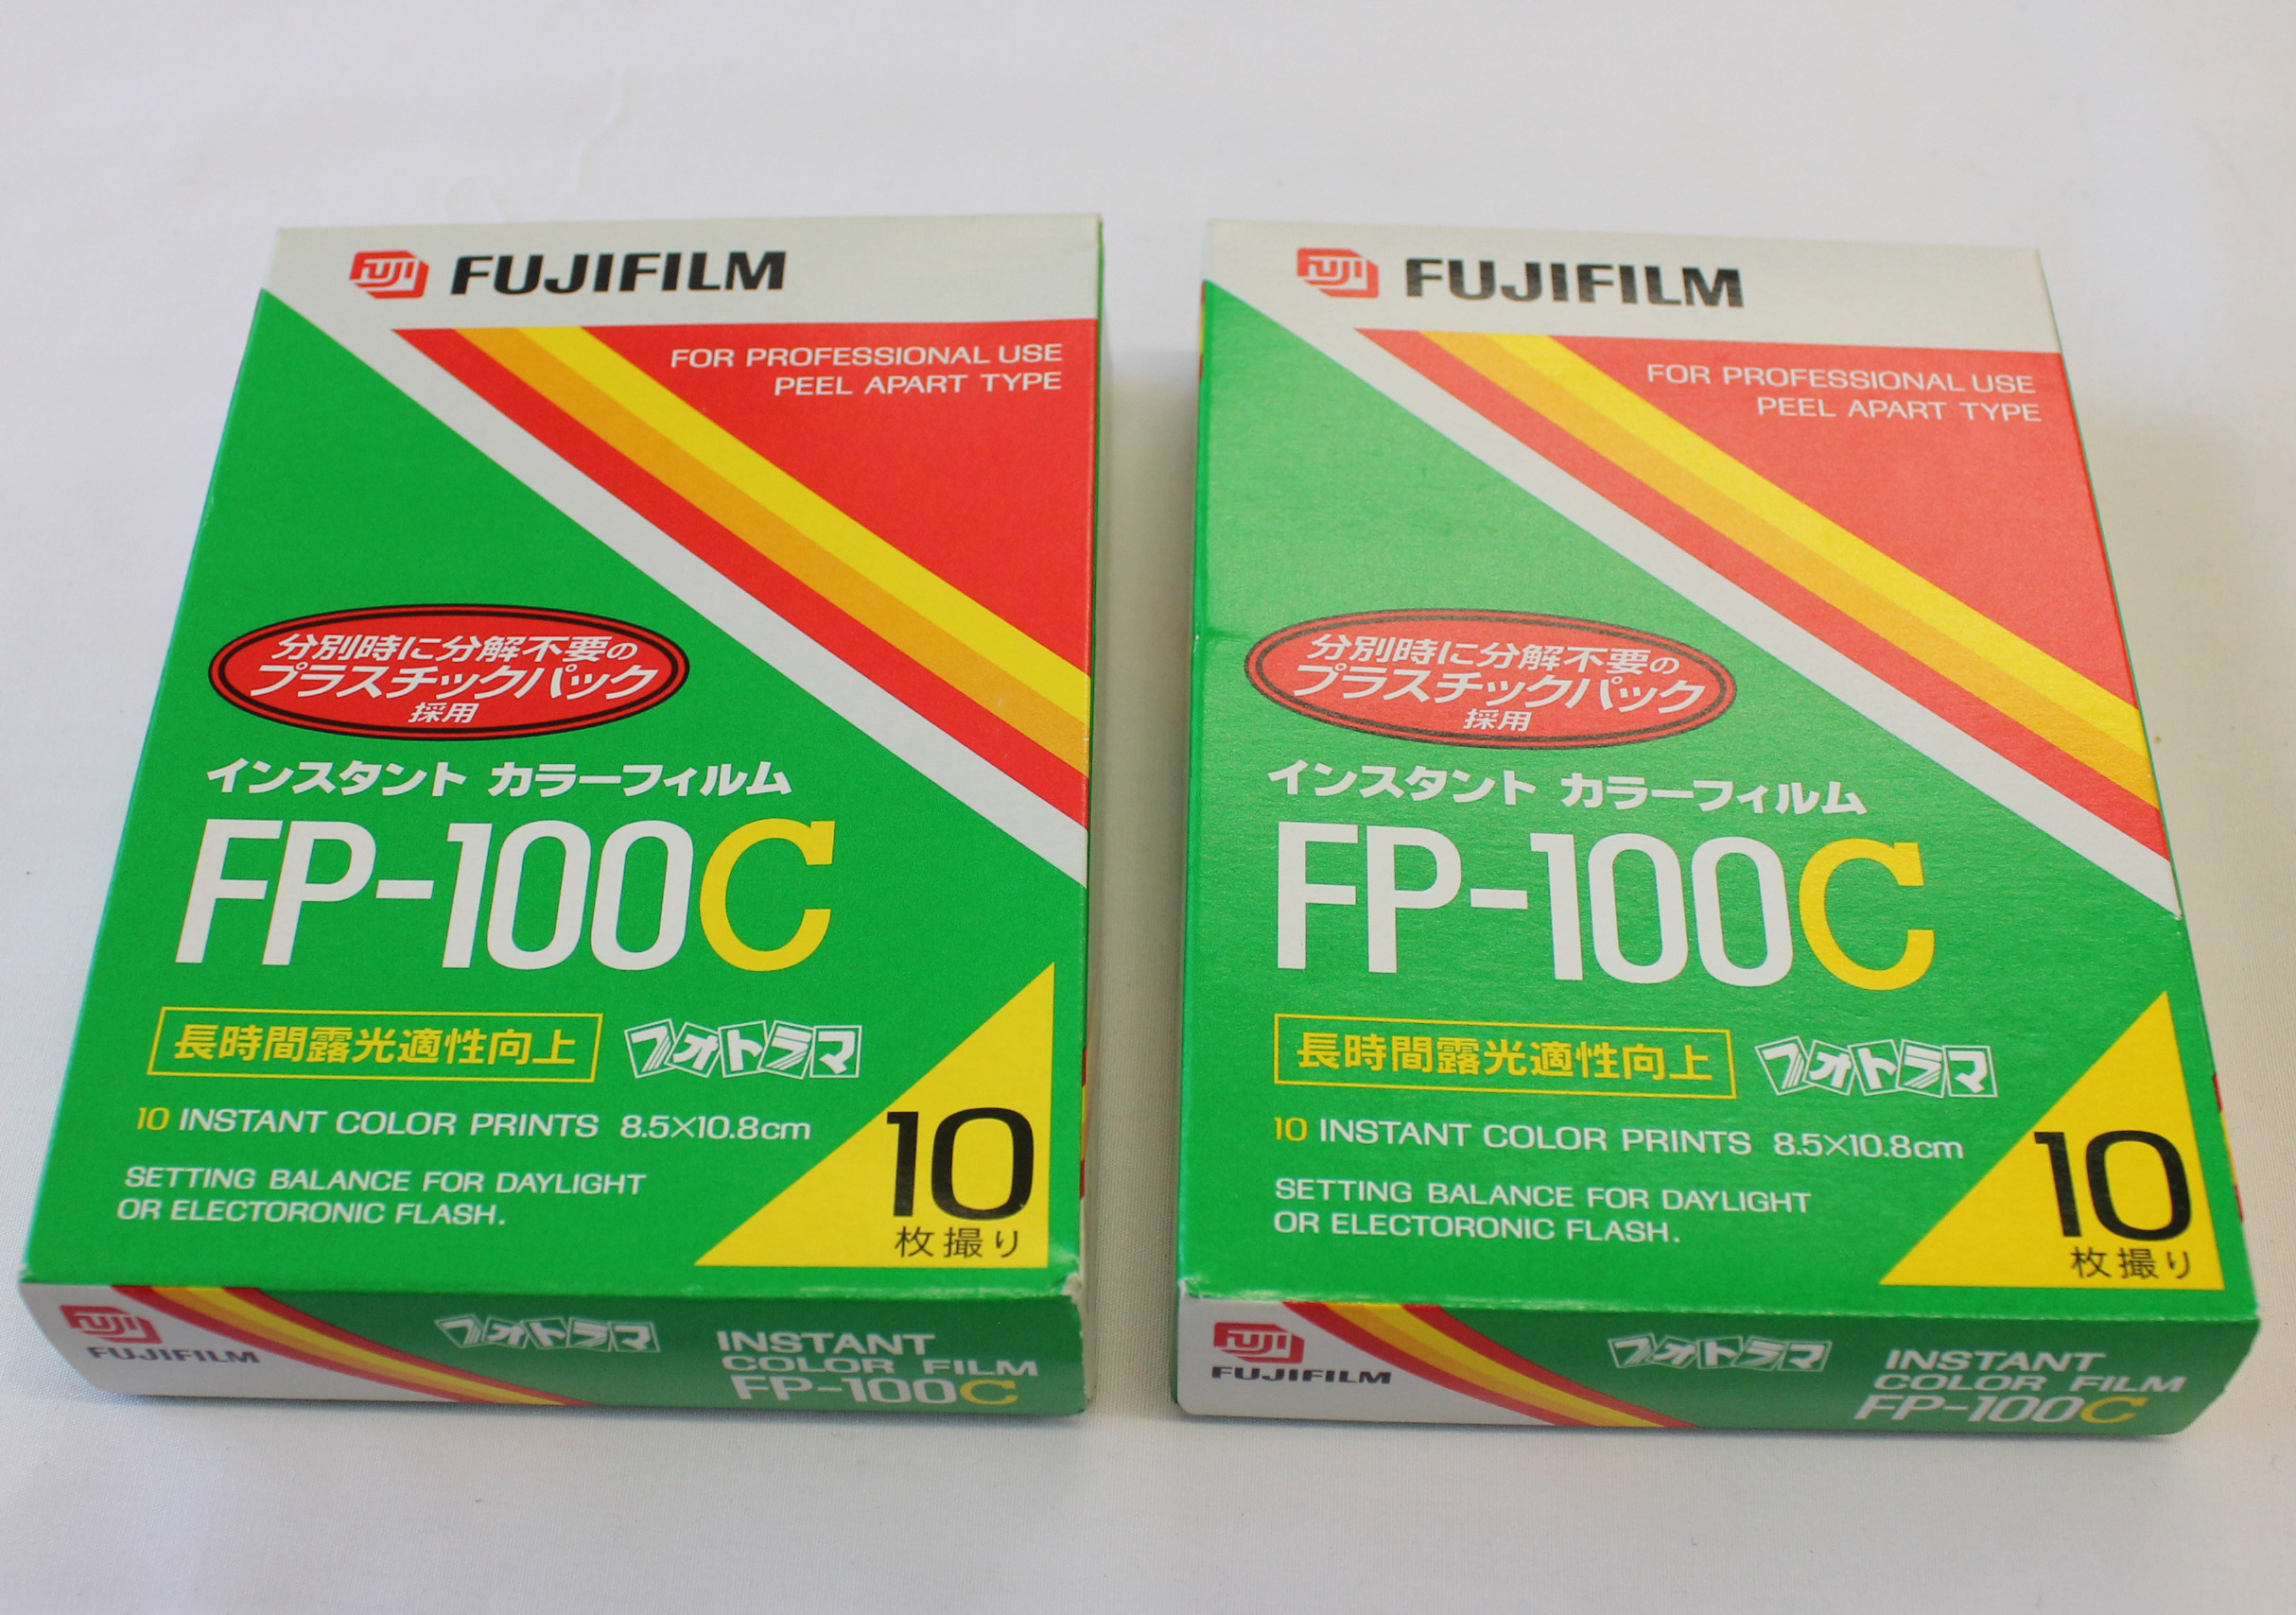 Japan Used Camera Shop | [New] Fujifilm FP-100C Instant Color Film Set of 2 (Expired) from Japan